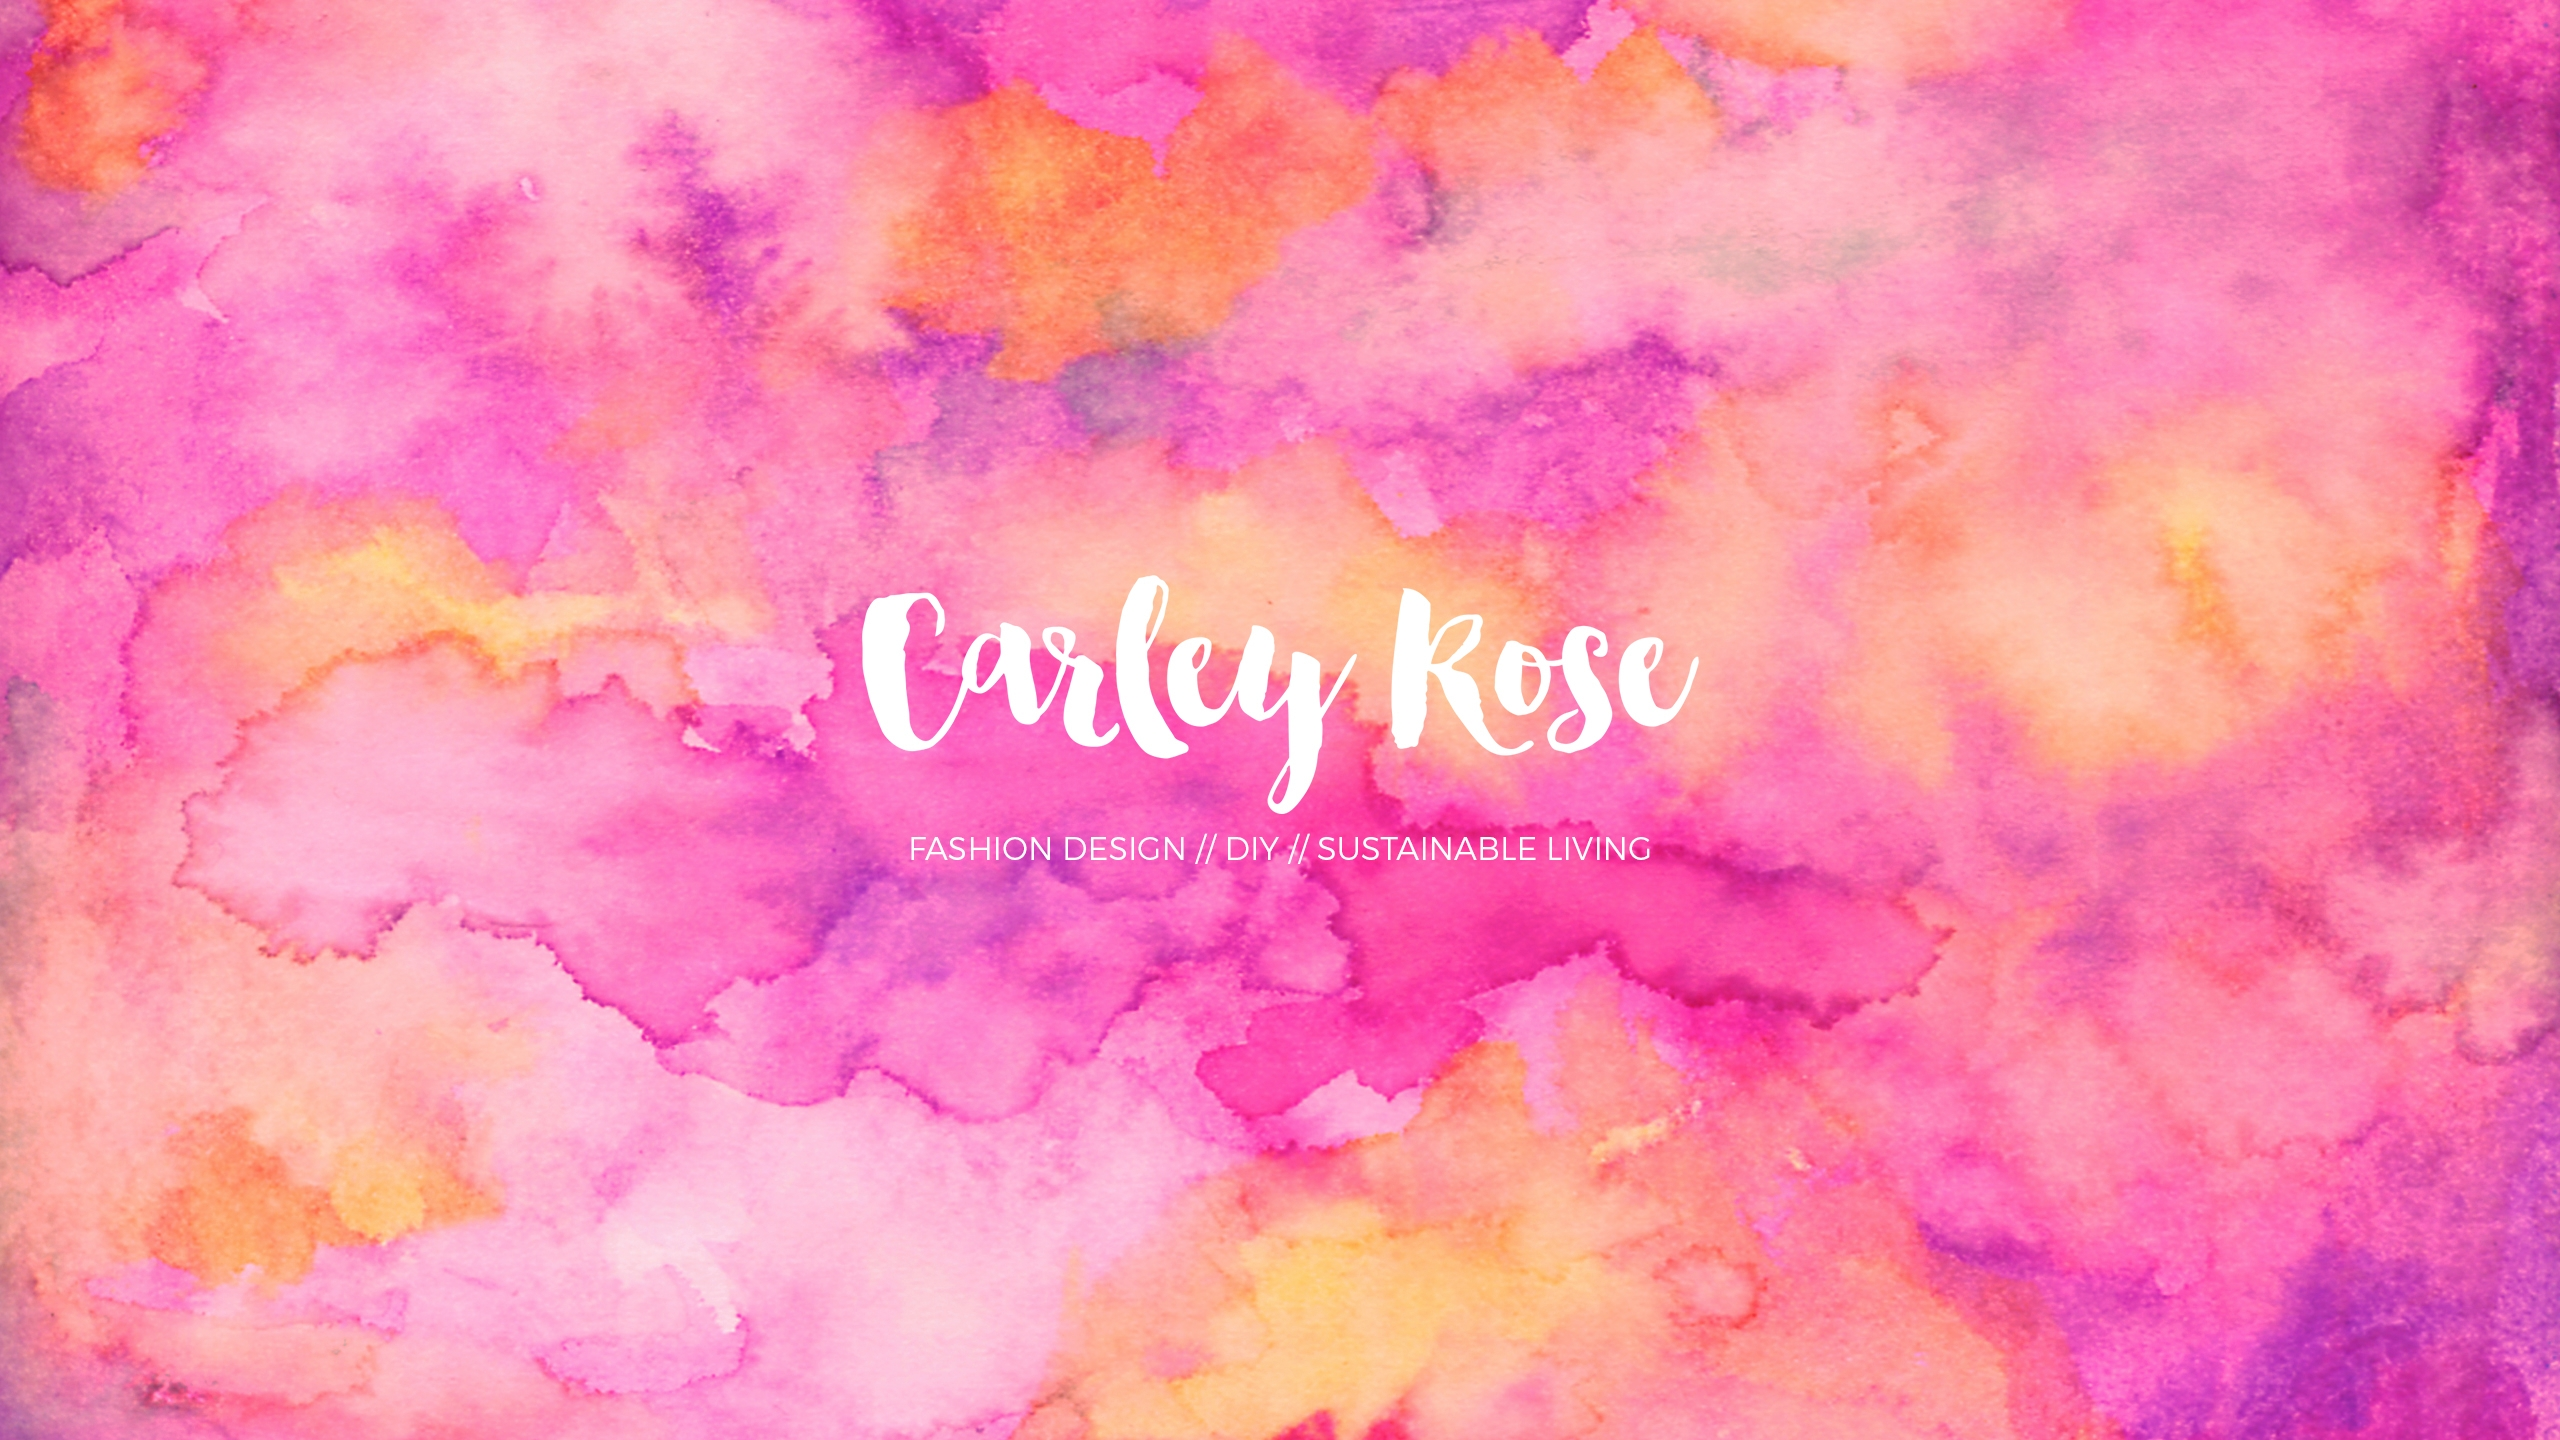 started uploading Fashion Desig - carleyrose | ello